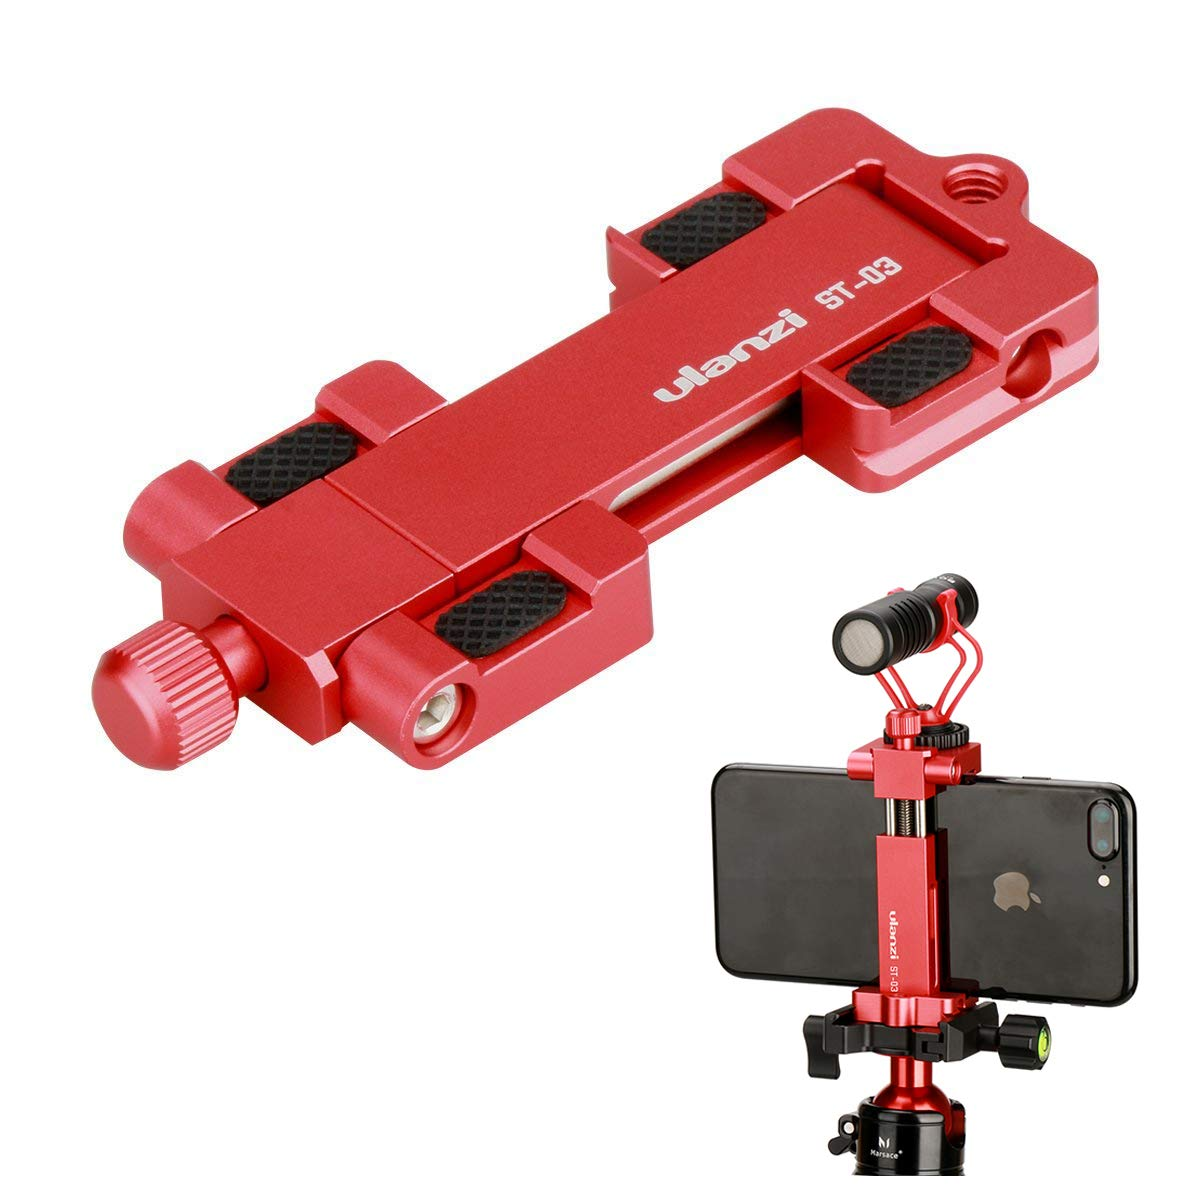 Ulanzi ST-03 Metal Smart Phone Tripod Mount with Cold Shoe Mount and Arca-Style Quick Release Plate for iPhone Xs X 8 7 Plus Samsung Huawei,Cell Phone Tripod Holder Clip Adapter (Red) by ULANZI